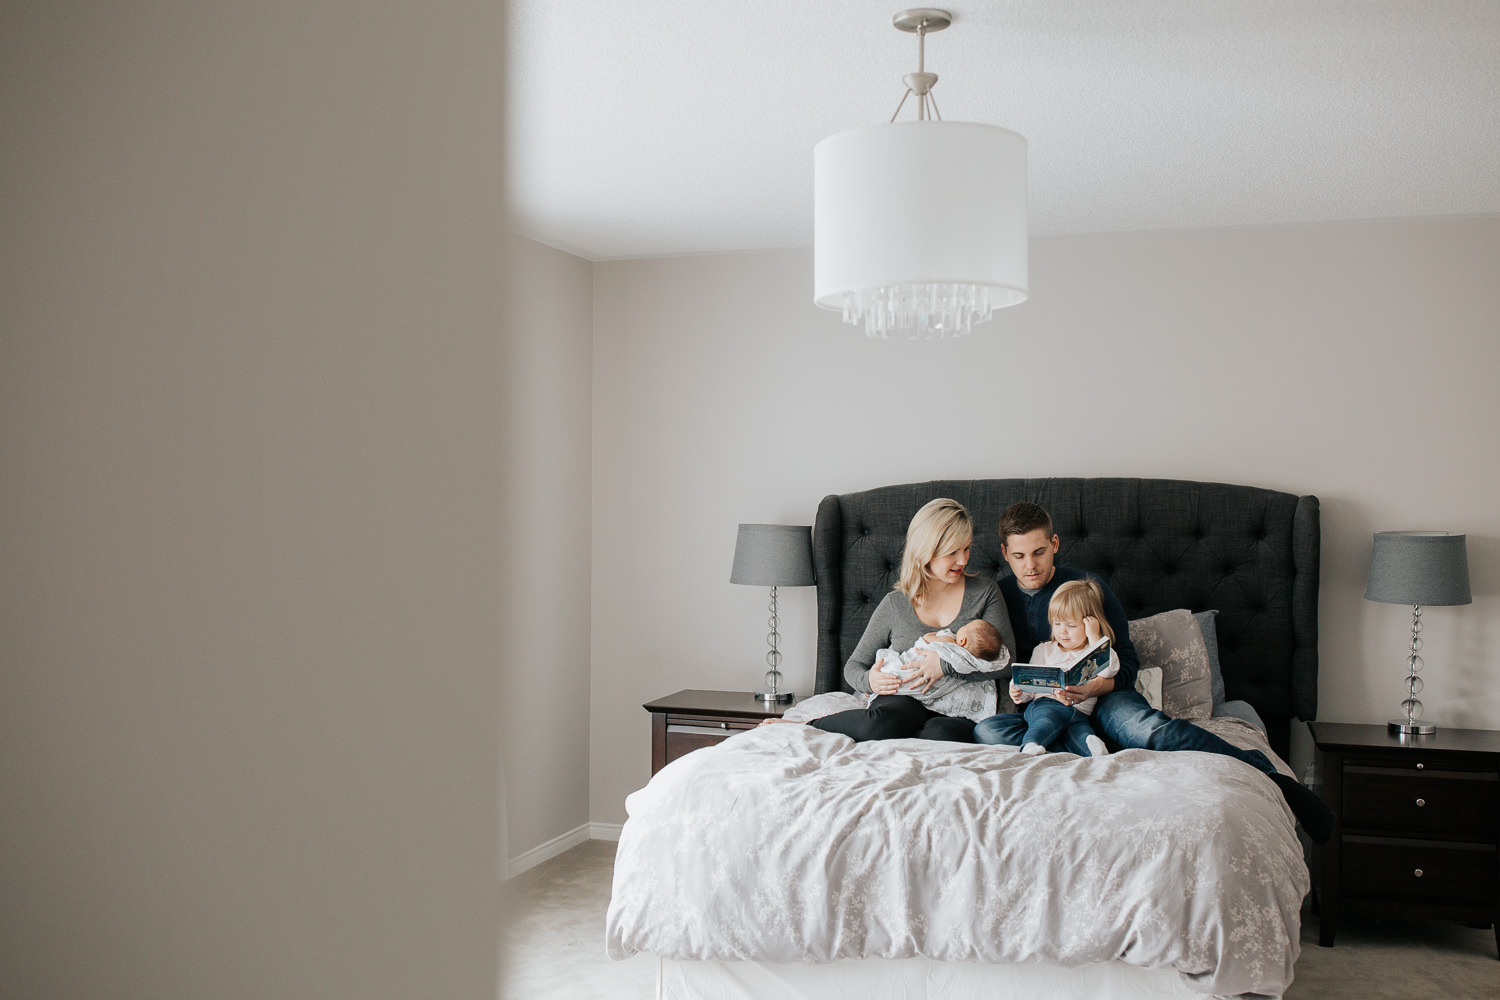 family of four sitting on bed, mom holding 2 week old baby boy 2 year old girl sitting on dad's lap reading story book - York Region Lifestyle Photography